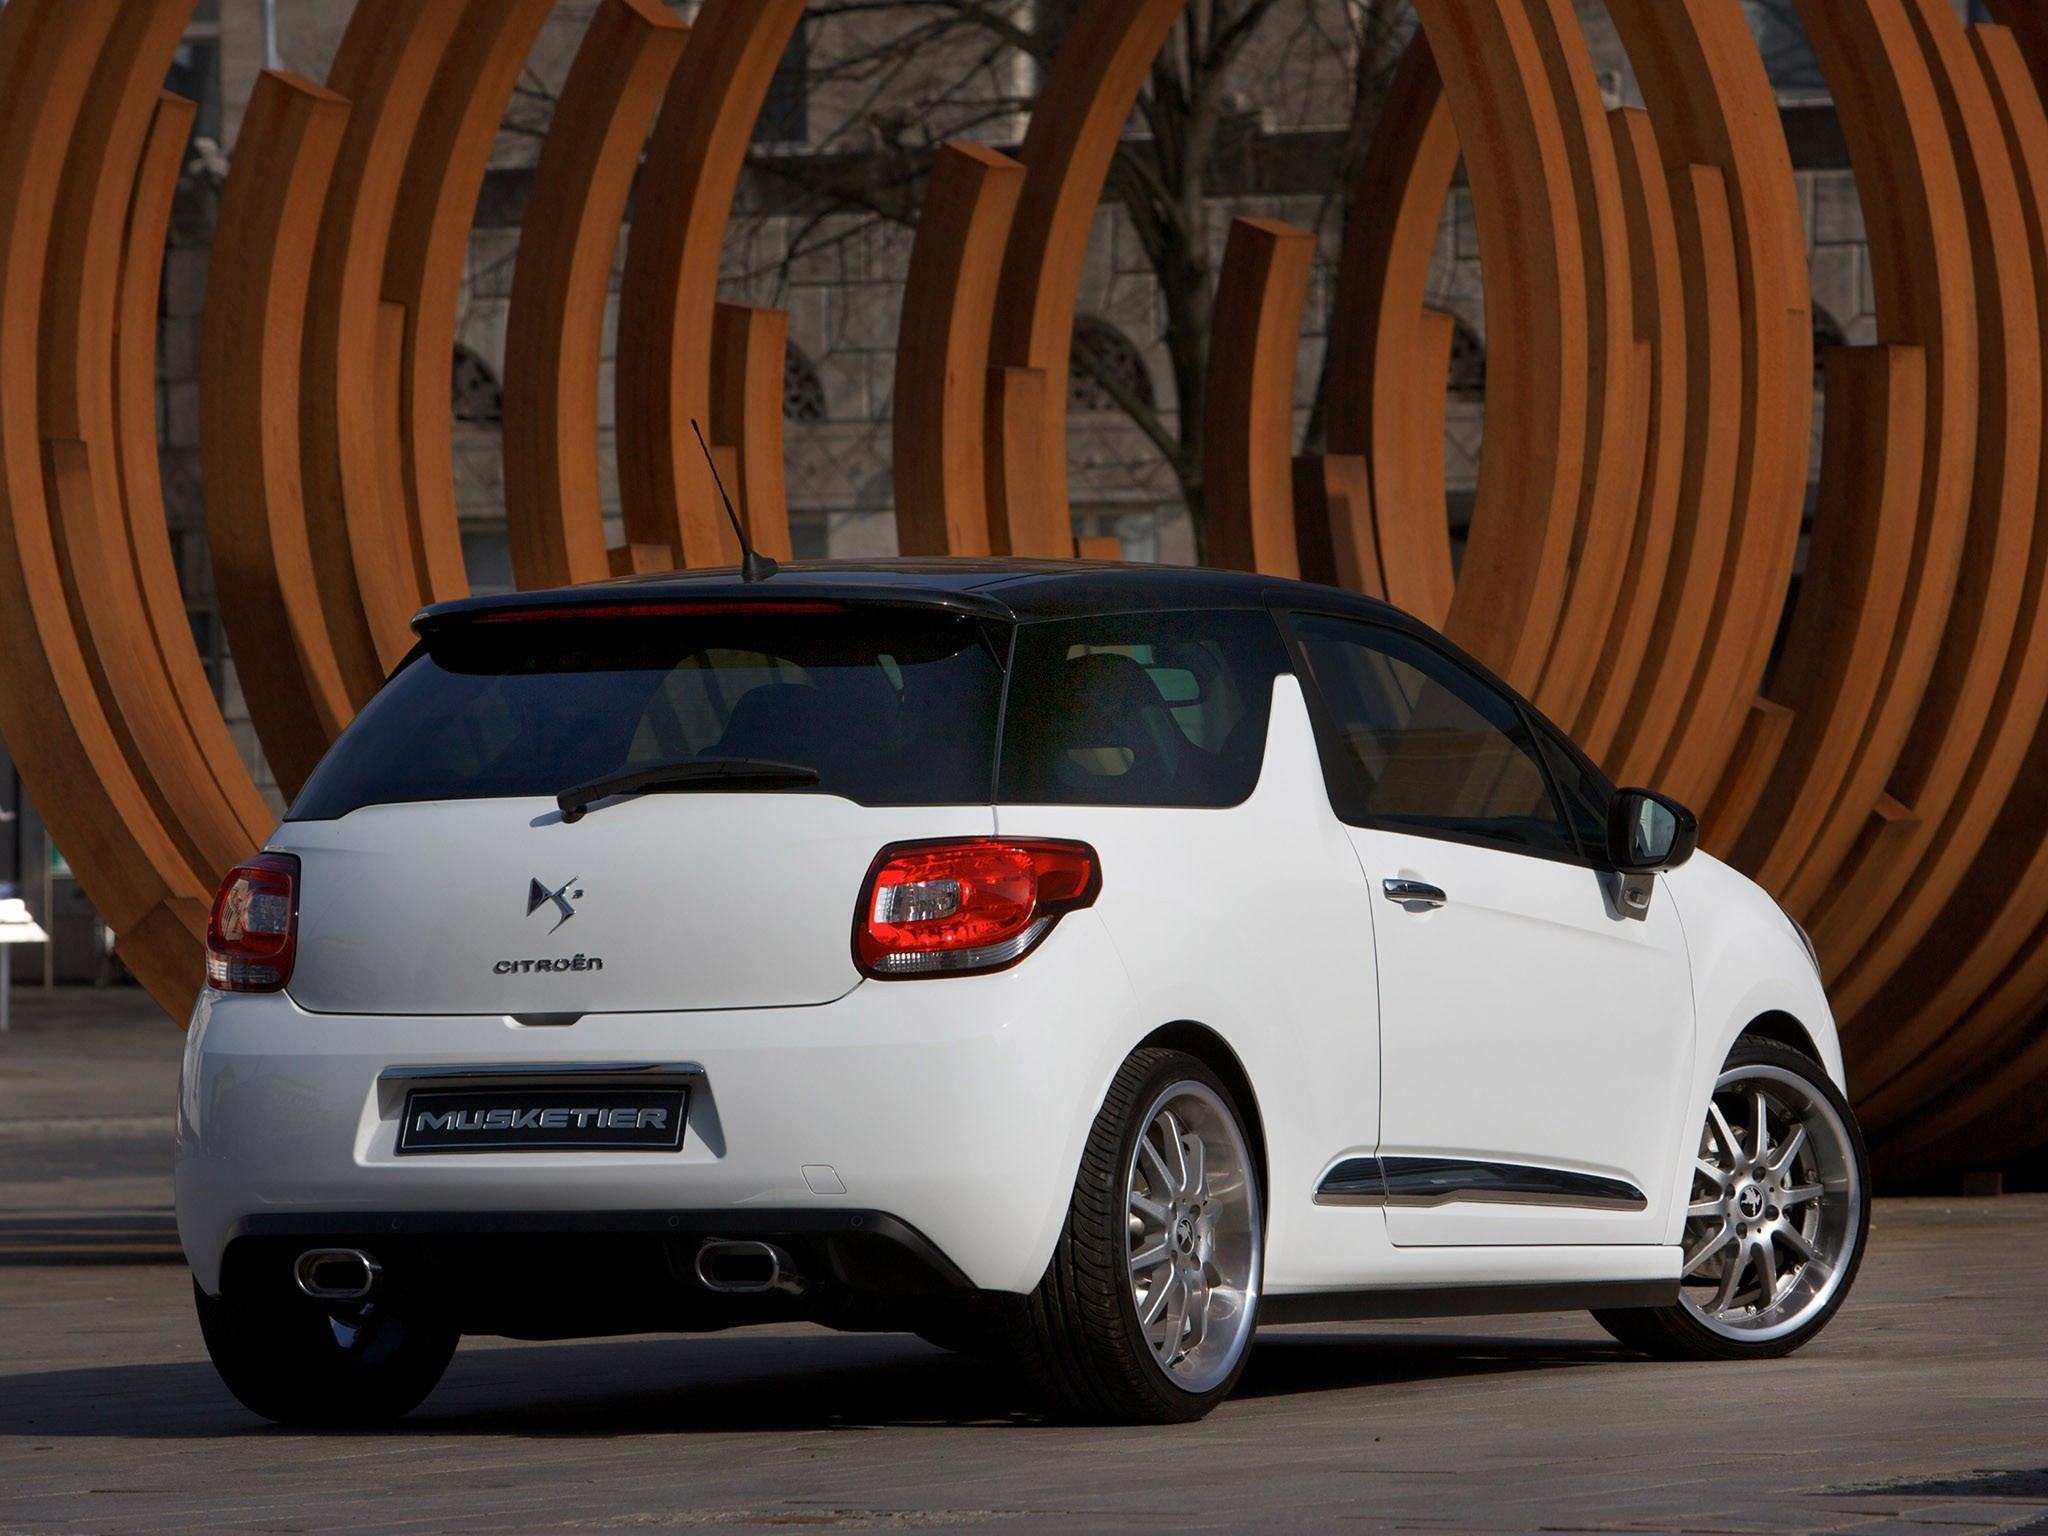 2010 Musketier Citroen DS3